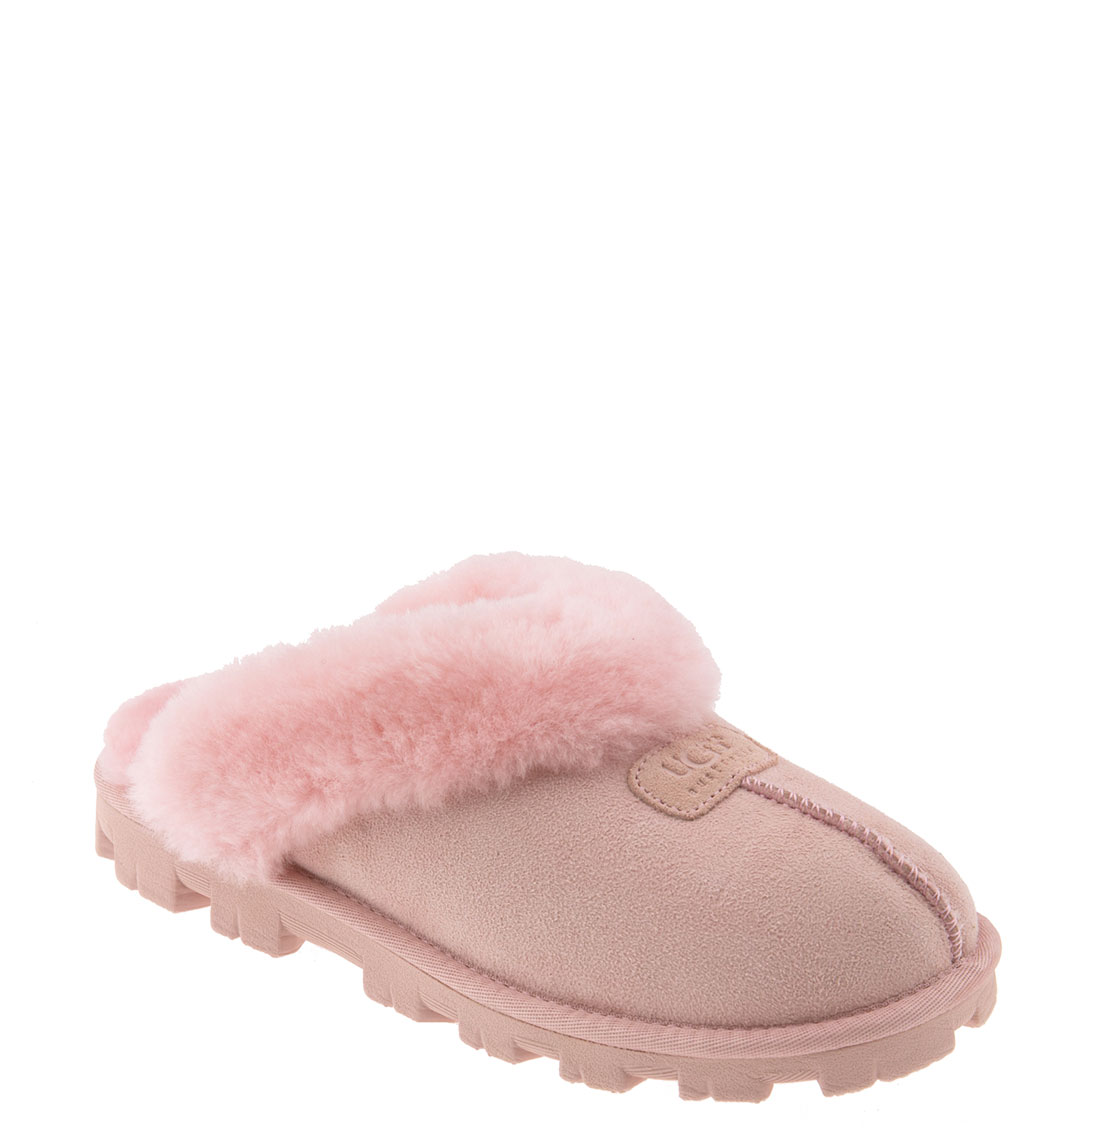 Slippers Target Australia Womens Pink Ugg Slippers